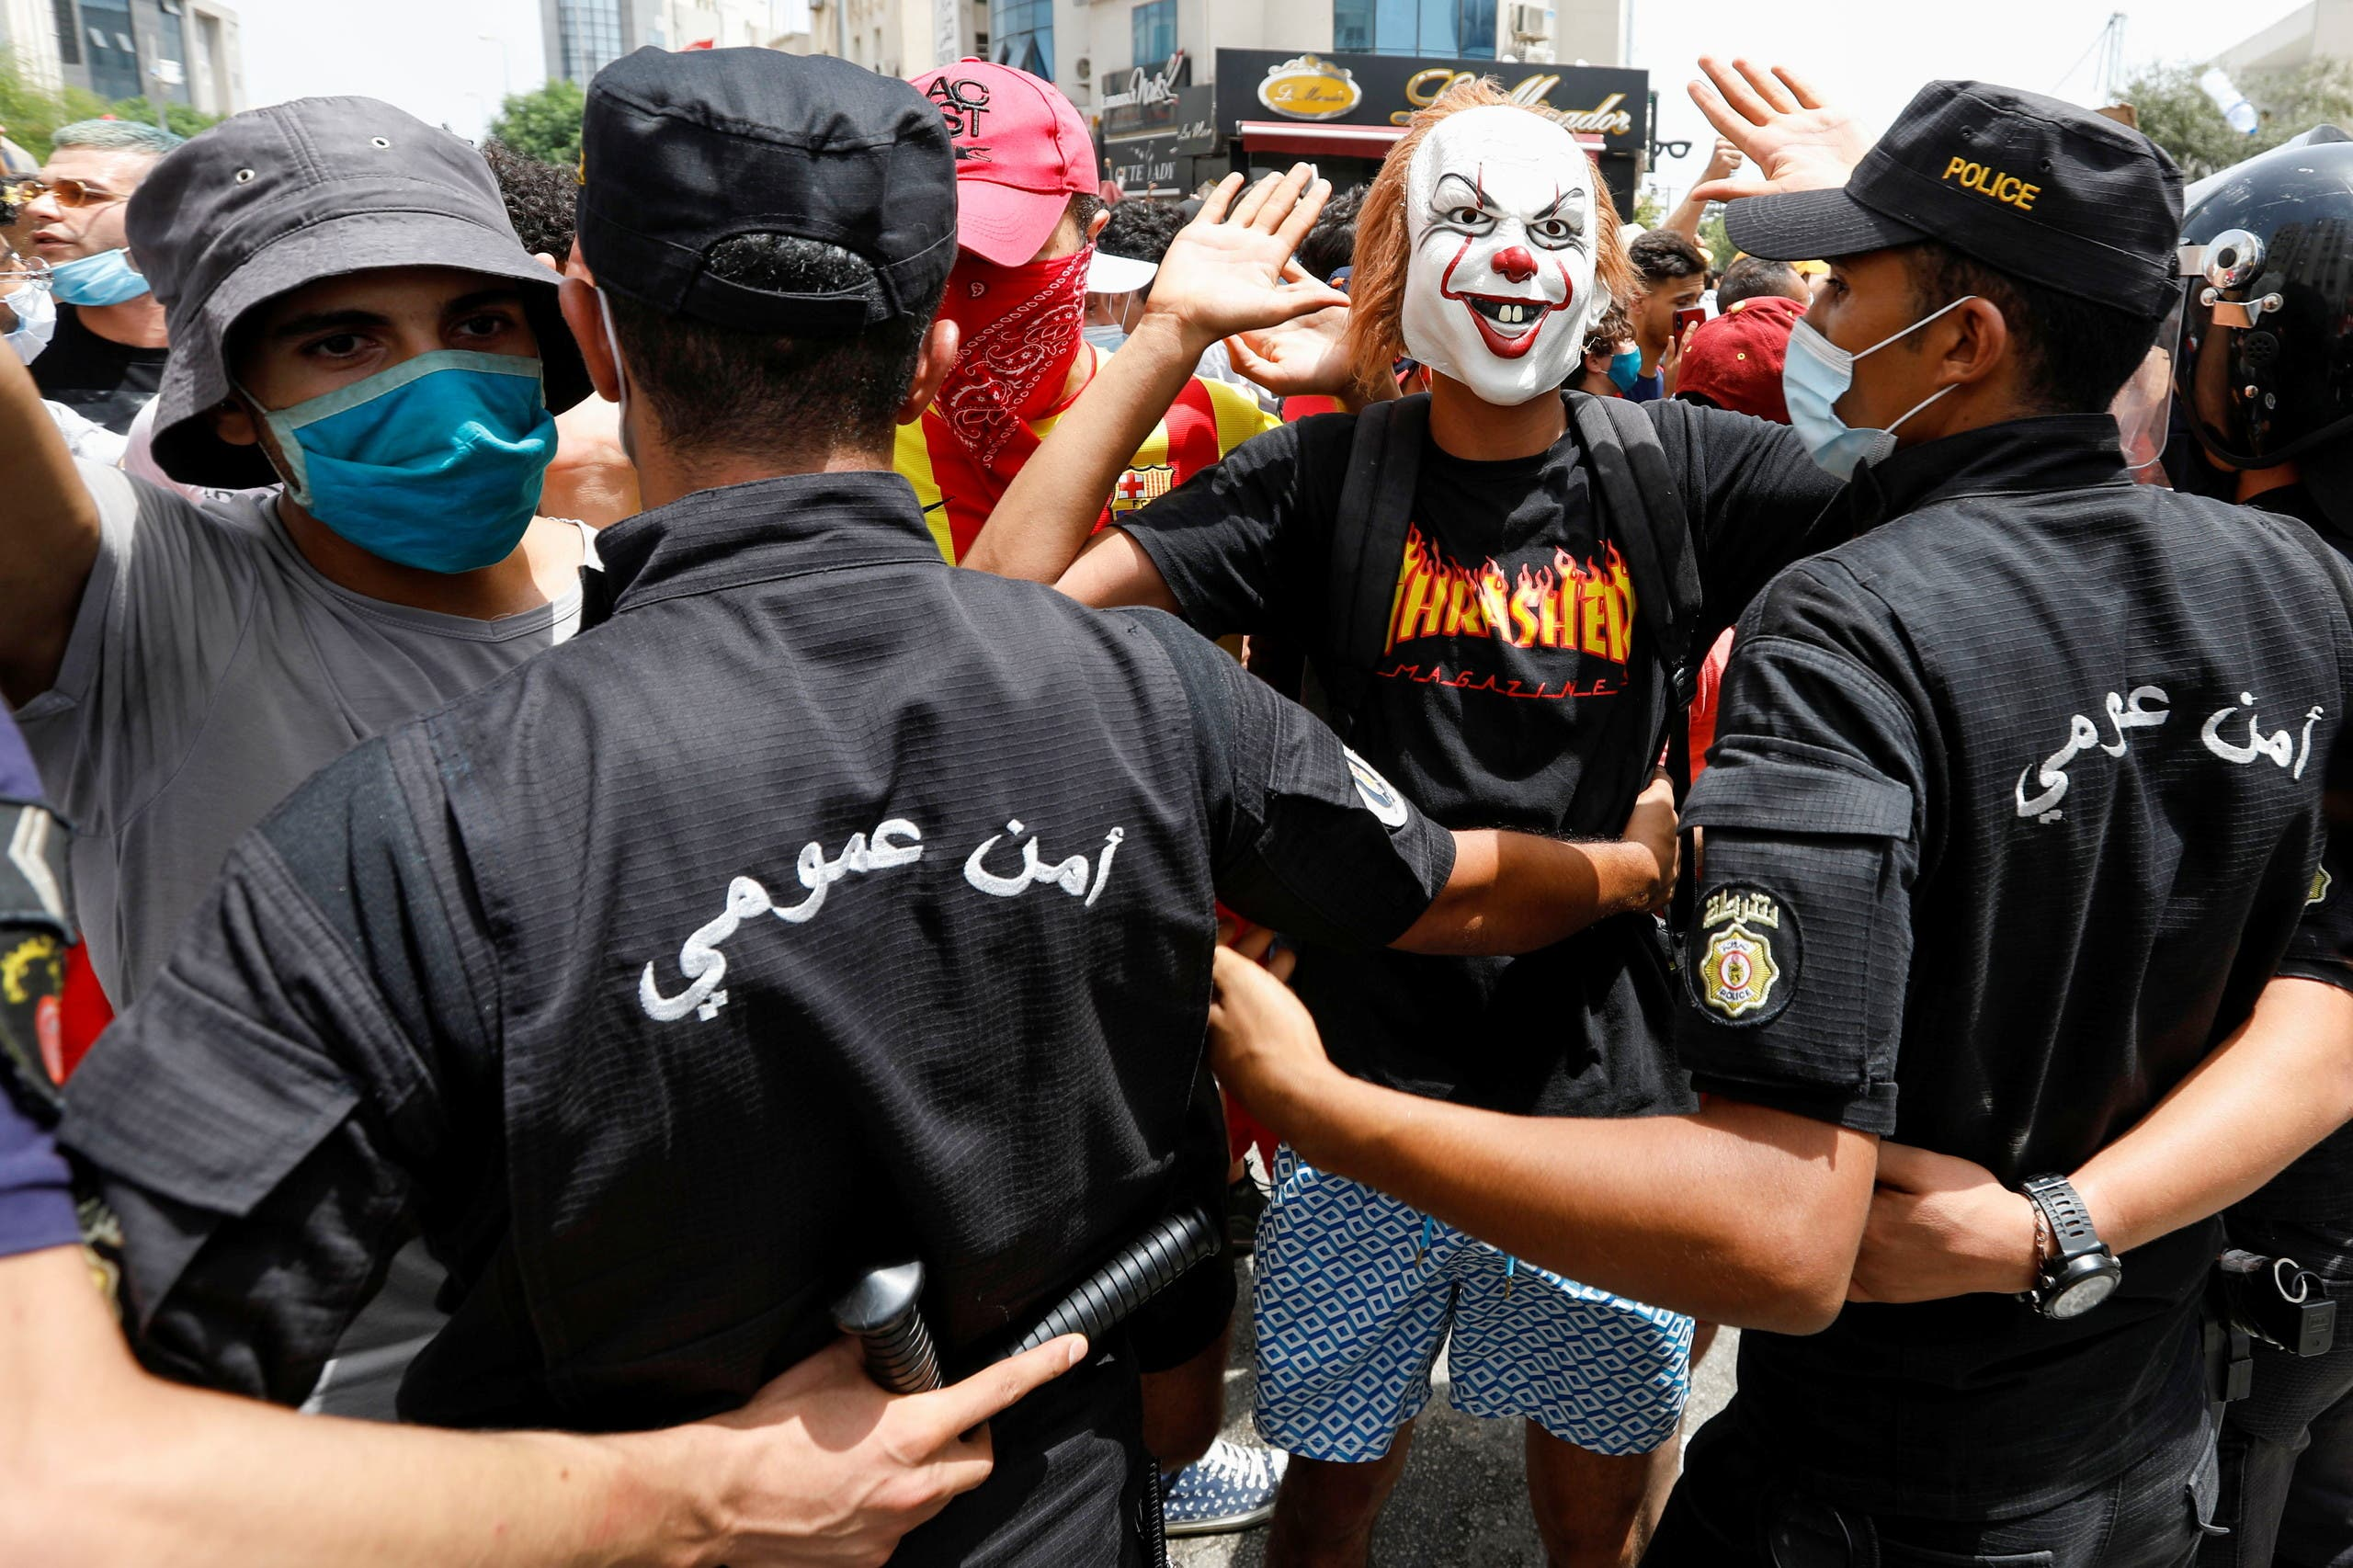 A demonstrator wearing a mask gestures in front of police officers standing guard during an anti-government protest in Tunis, Tunisia, July 25, 2021. (Reuters)